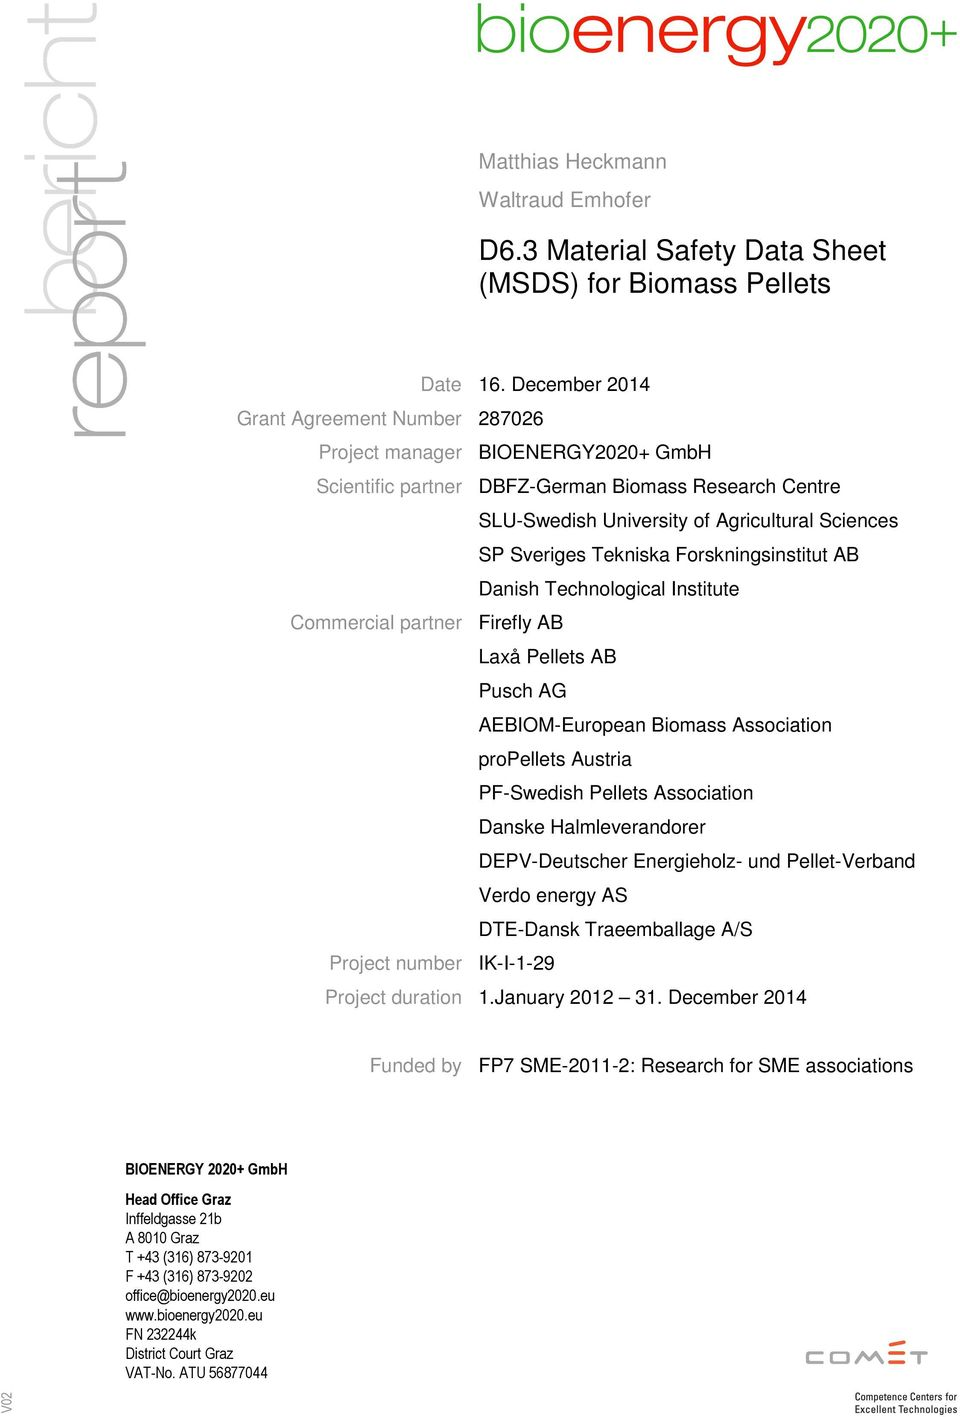 Unika D6.3 Material Safety Data Sheet (MSDS) for Biomass Pellets - PDF UO-51